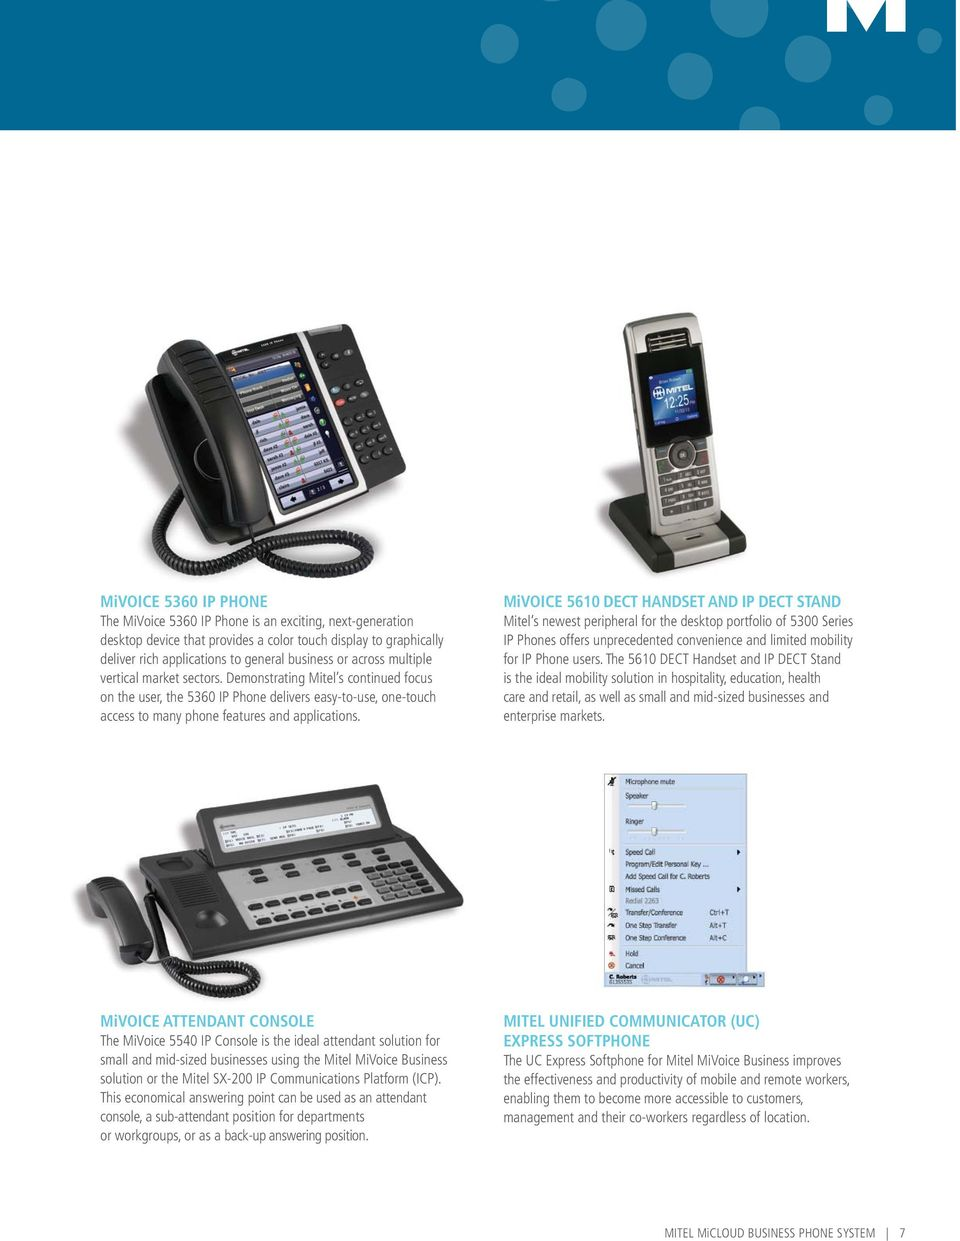 MiVoice 5610 DECT Handset and IP DECT Stand Mitel s newest peripheral for the desktop portfolio of 5300 Series IP Phones offers unprecedented convenience and limited mobility for IP Phone users.